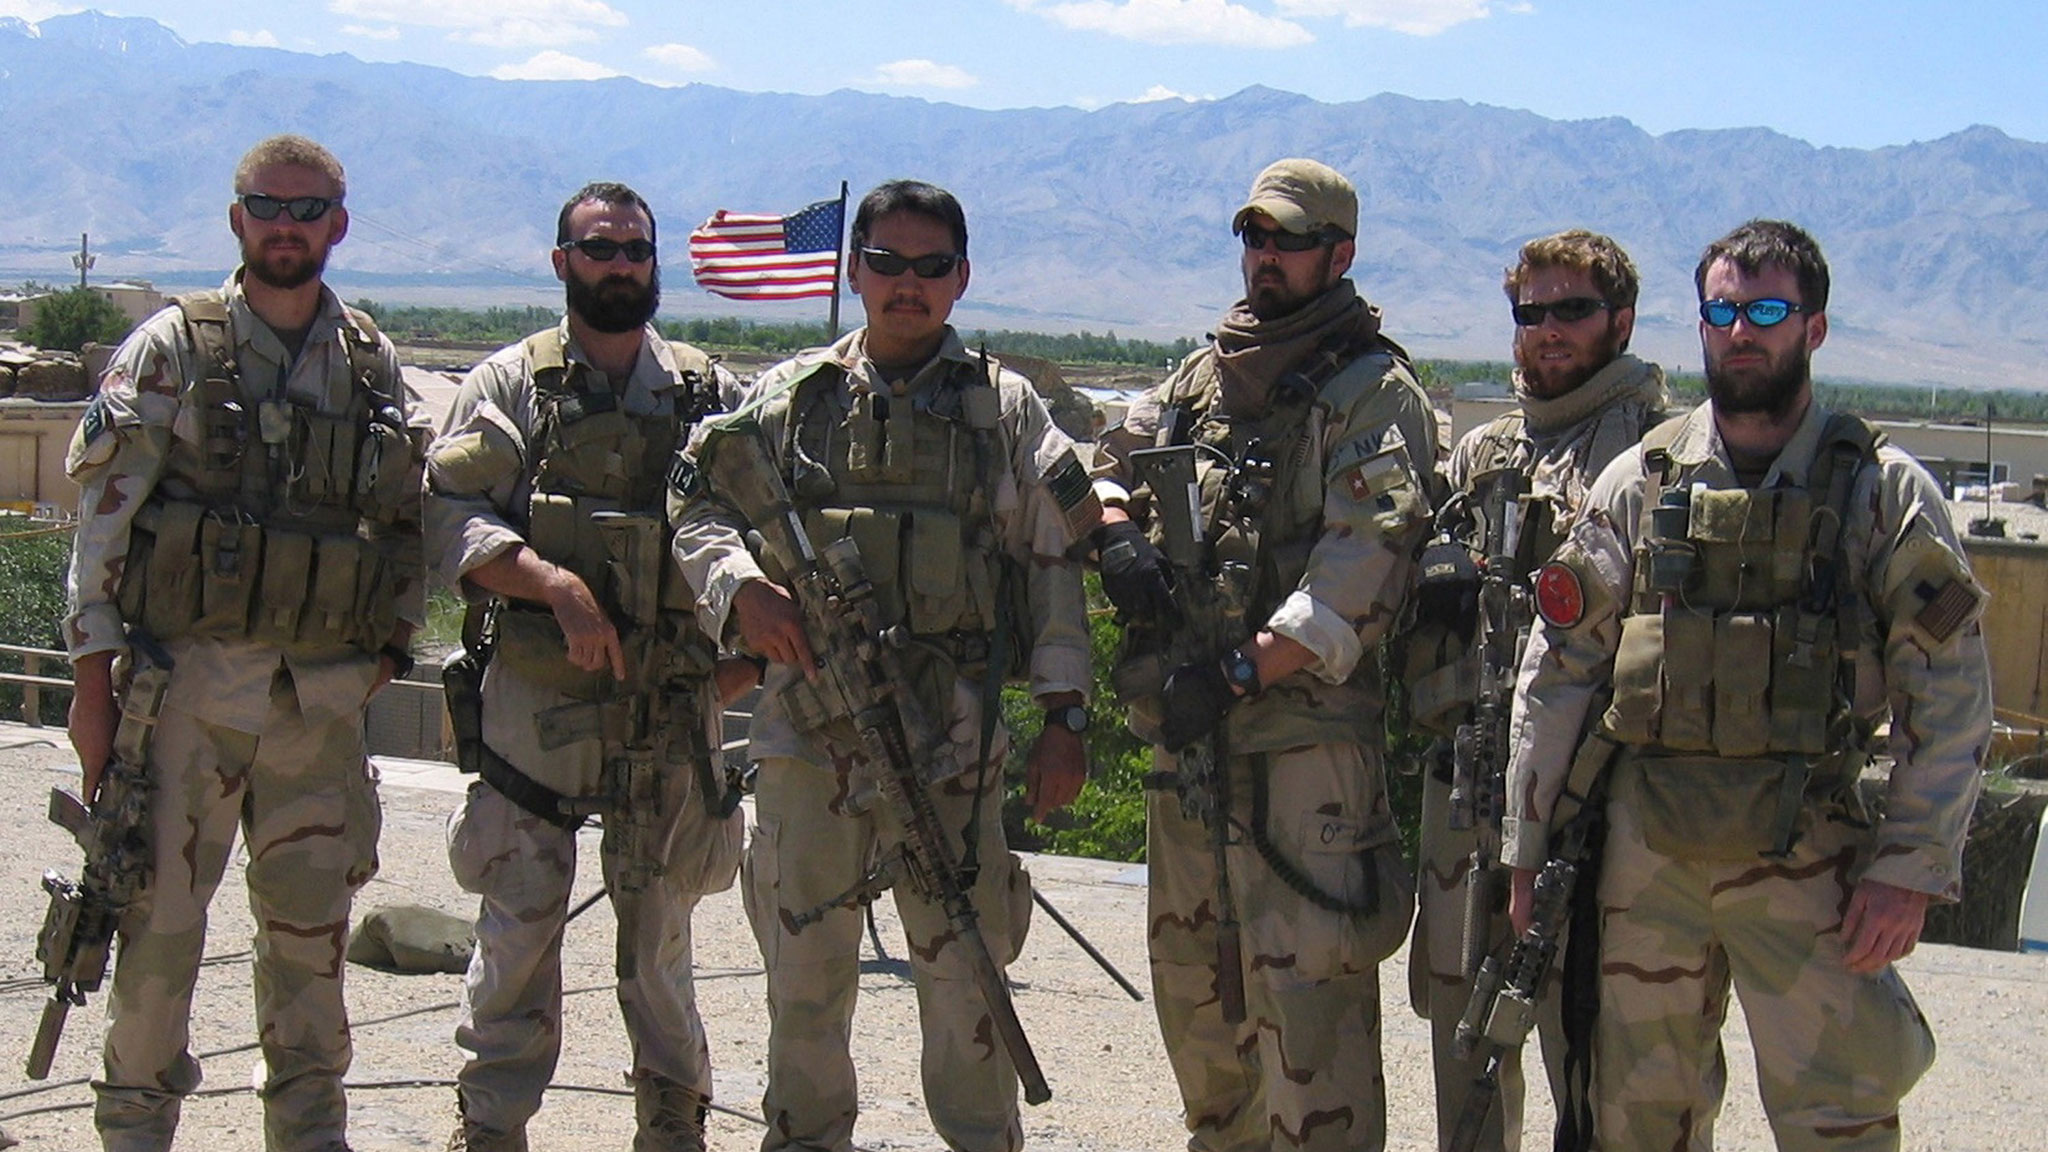 The SEALs of Operation Red Wings (Marcus Luttrell is 3rd from the right) (Photo: US Navy/Getty)